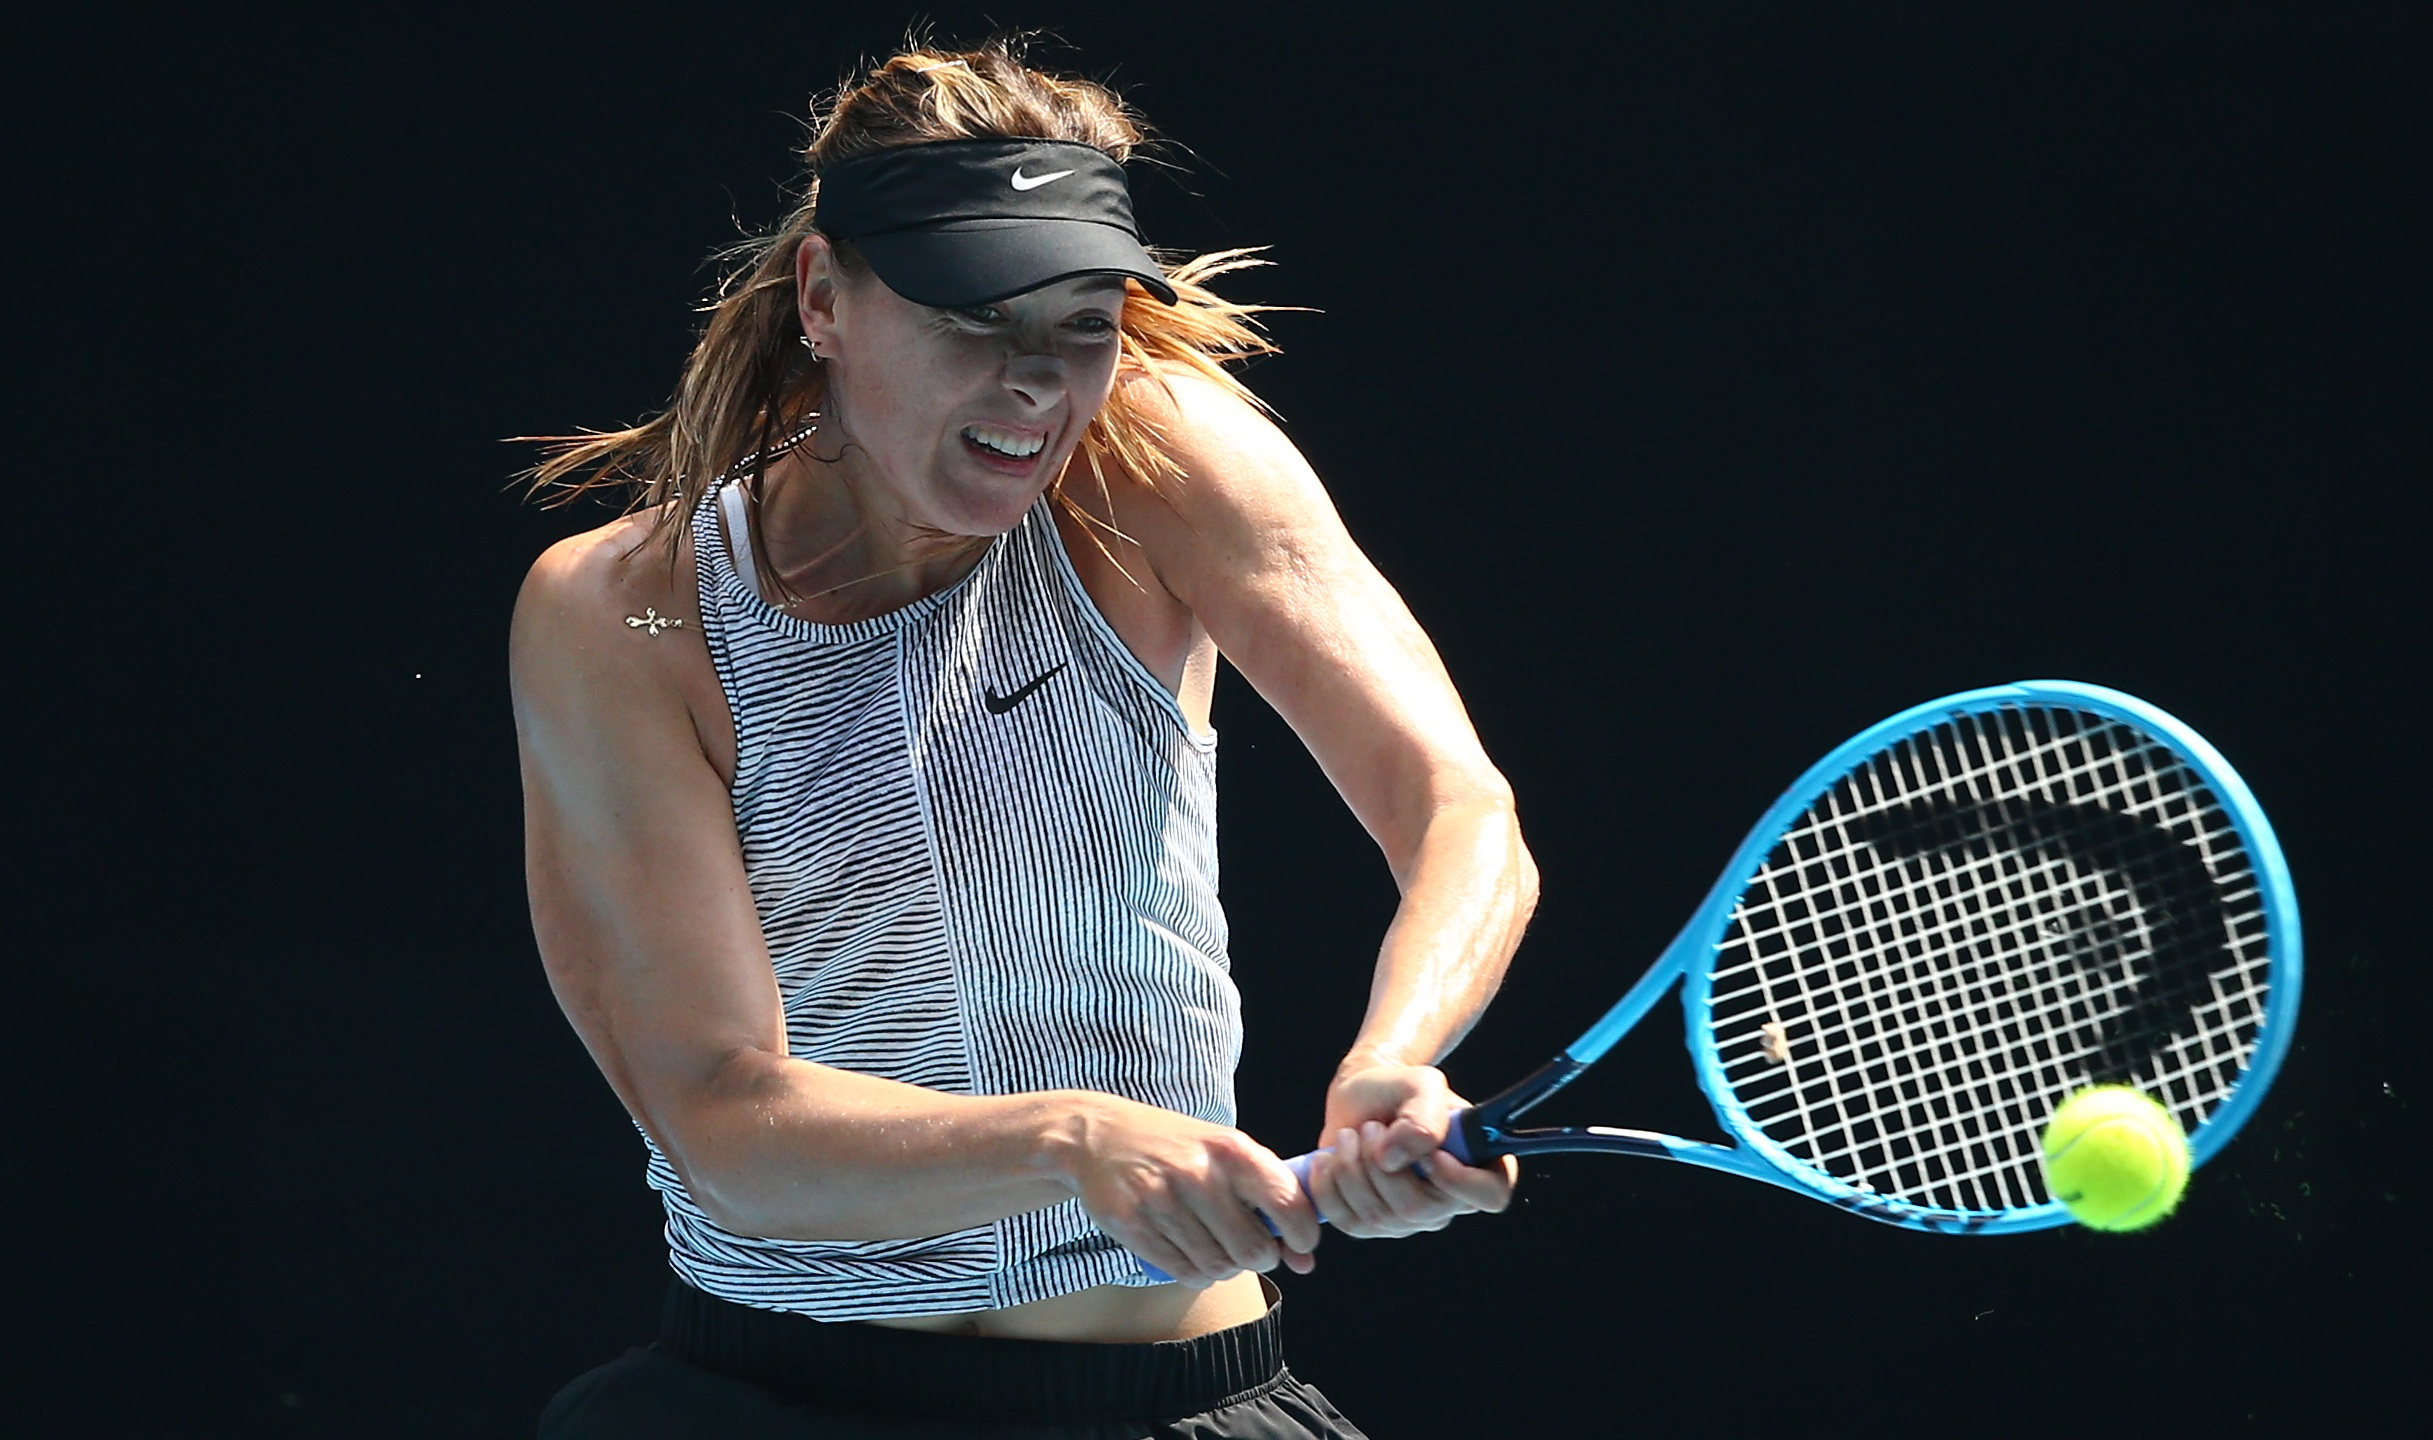 Maria Sharapova practices ahead of the 2020 Australian Open at Melbourne Park on Jan. 19, 2020 in Melbourne, Australia. (Mike Owen/Getty Images)